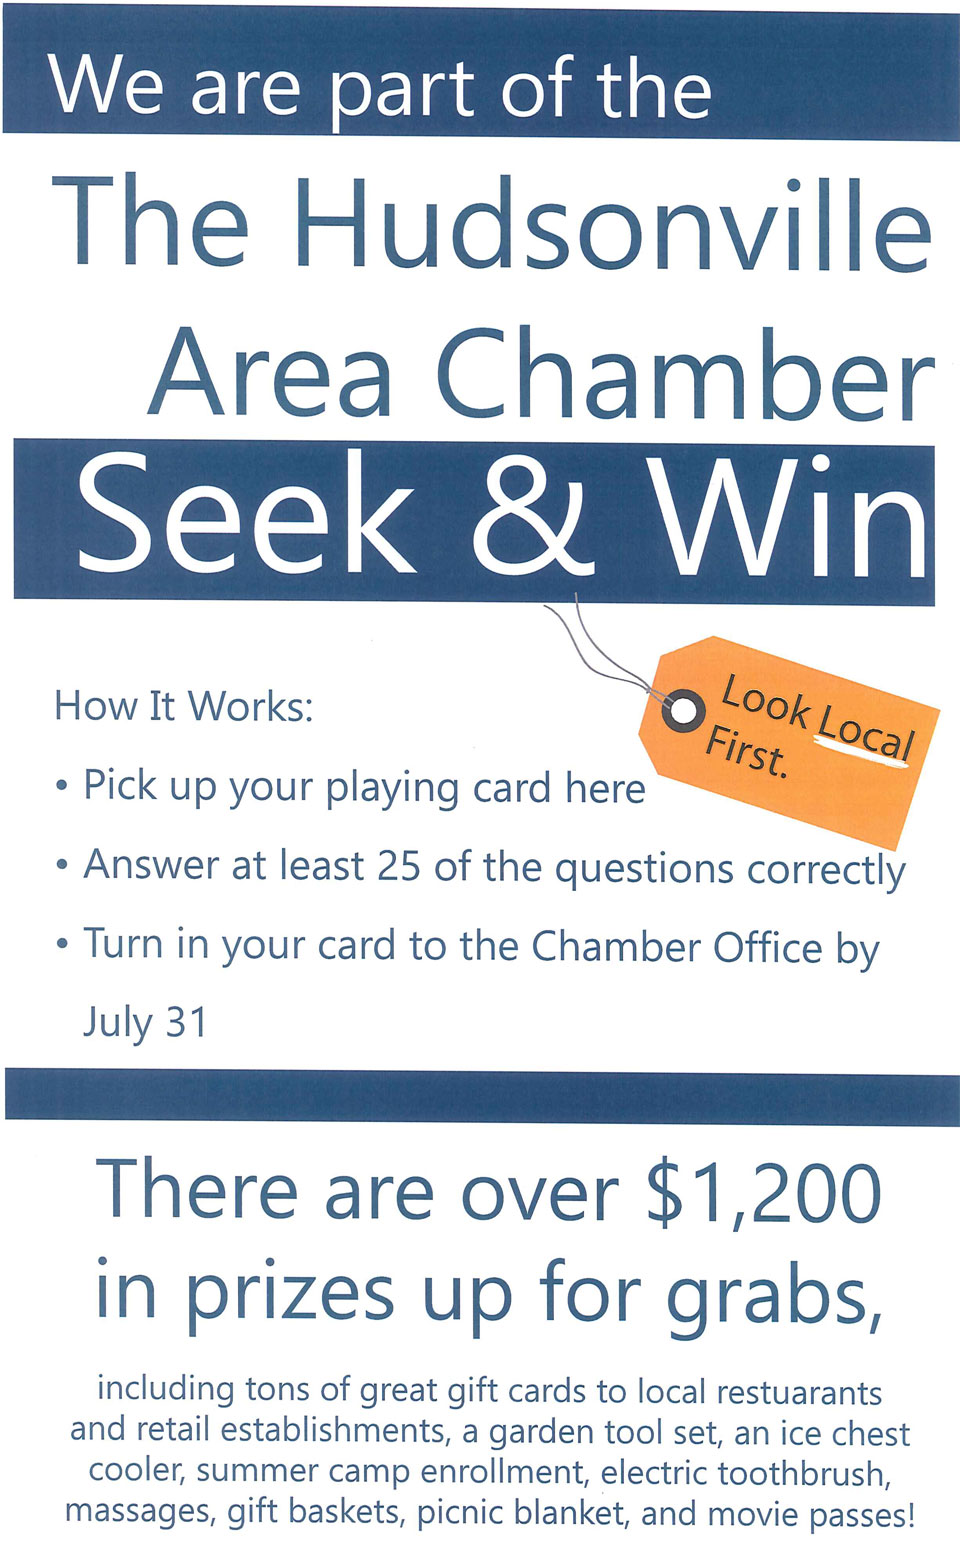 The Hudsonville Area Chamber Seek and Win